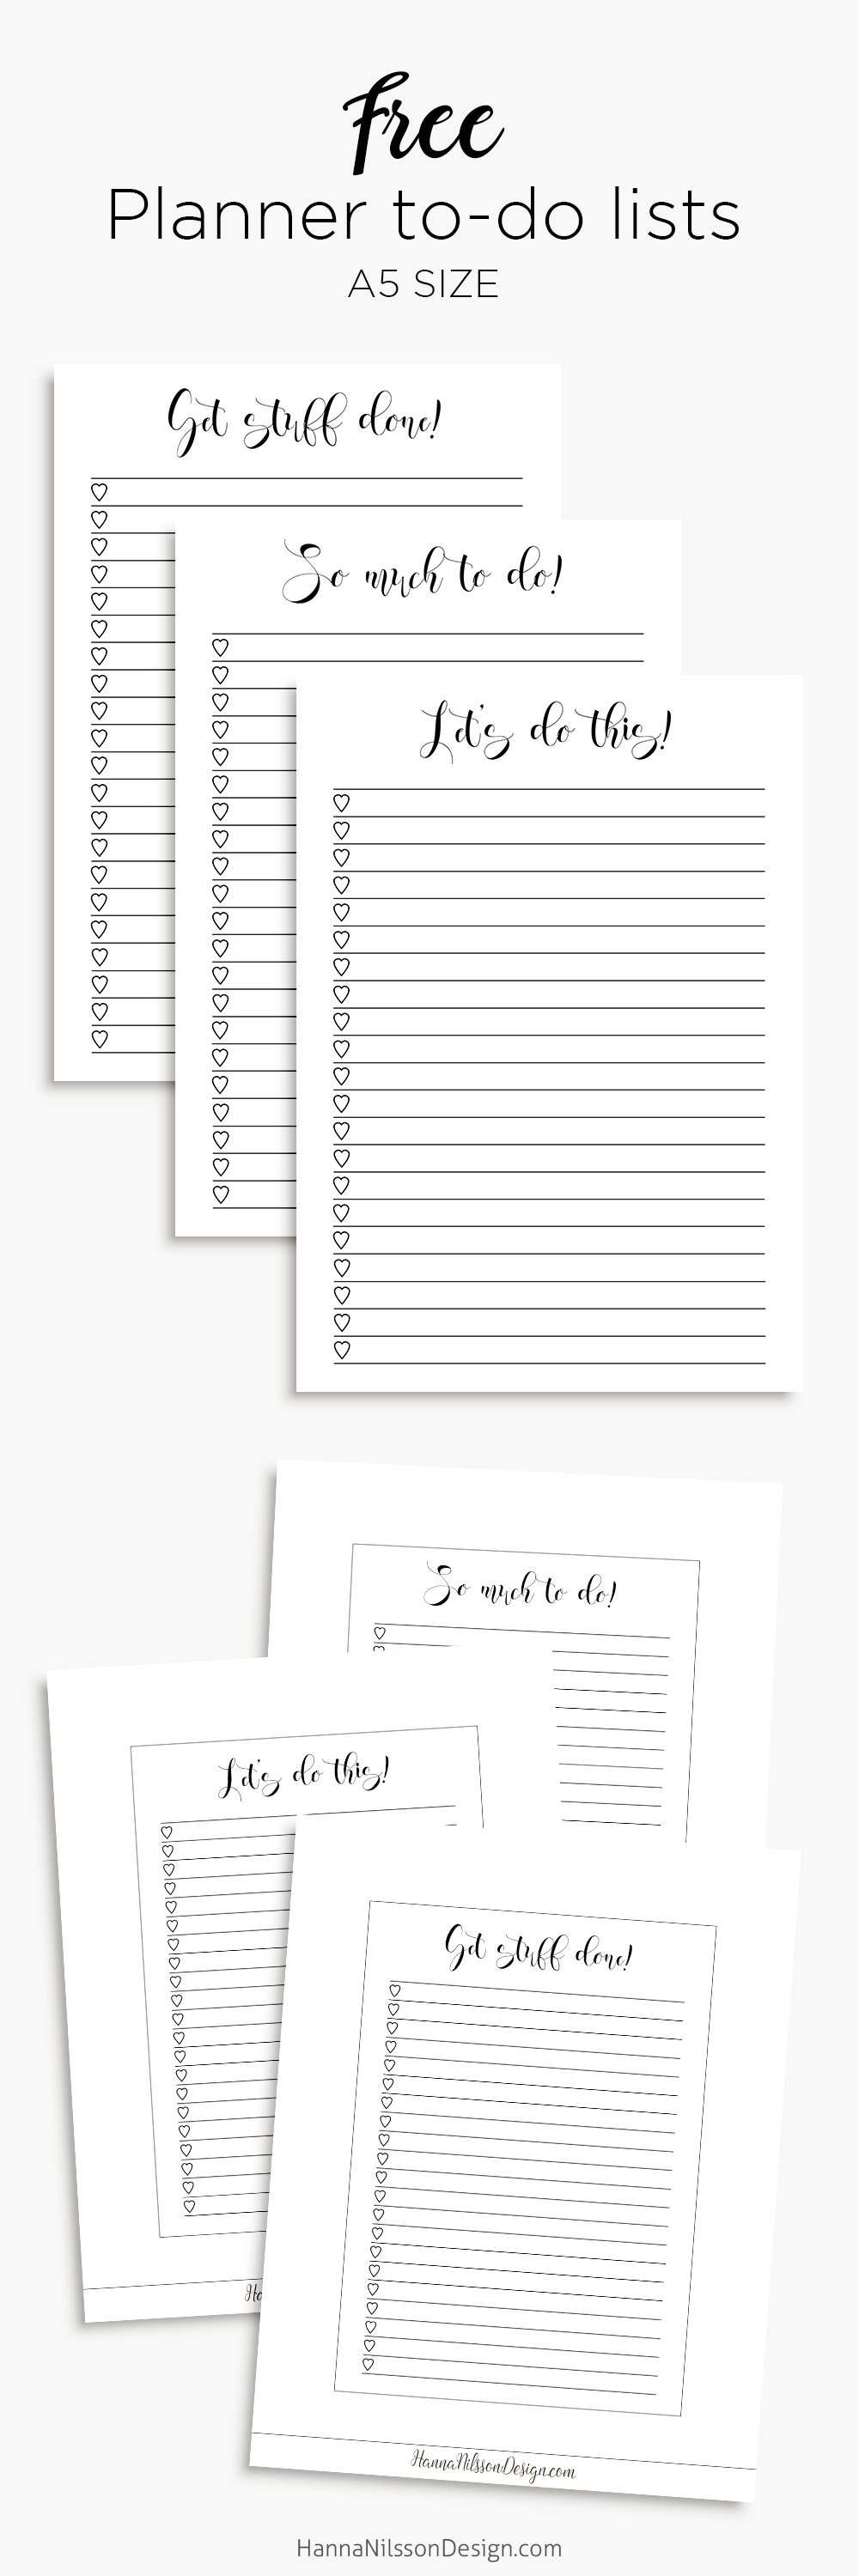 photo relating to To Do List Printables named Planner in direction of-do lists printable inside of A5 and Particular person dimensions